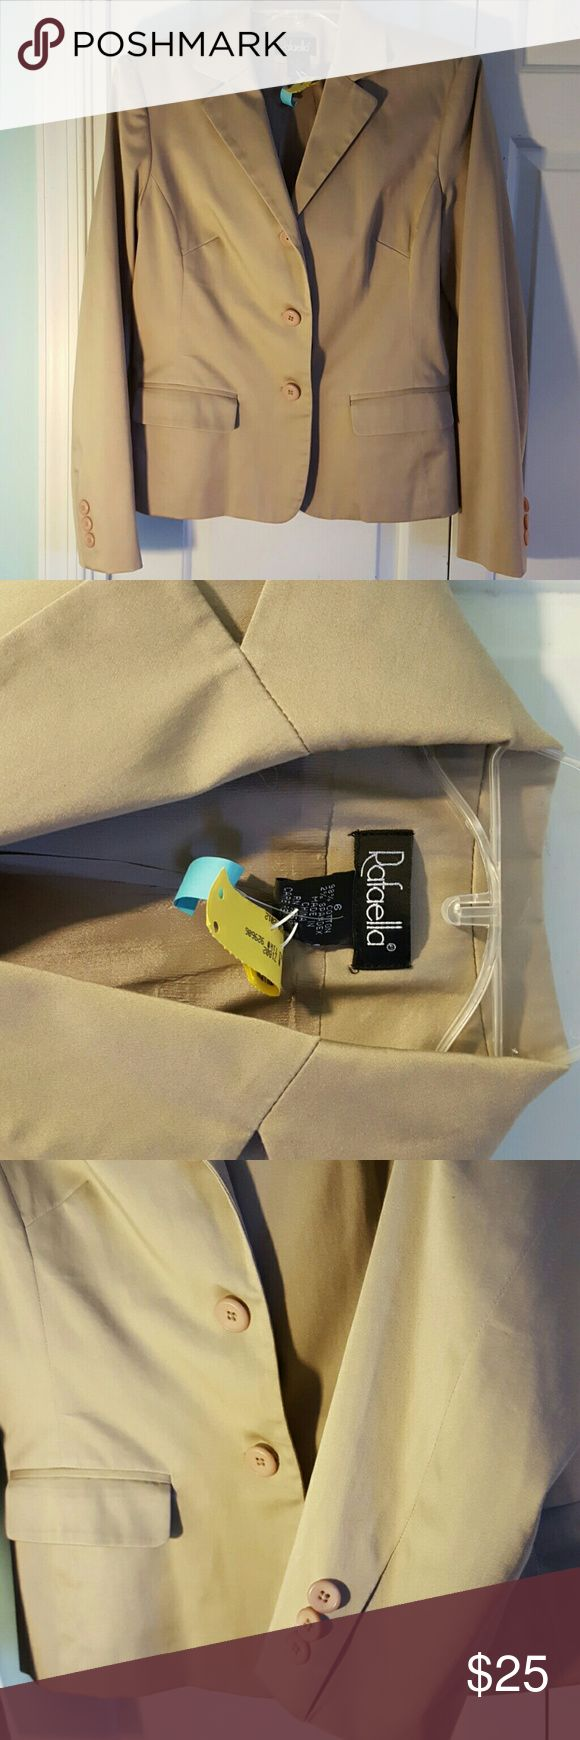 Rafaella Tan Suit Jacket Blazer Size 6 High Quality Made Fully Lined Tan Cotton Spandex Suit Coat Jacket Dress up your whole outfit. Goes great with jeans Rafealla Jackets & Coats Blazers